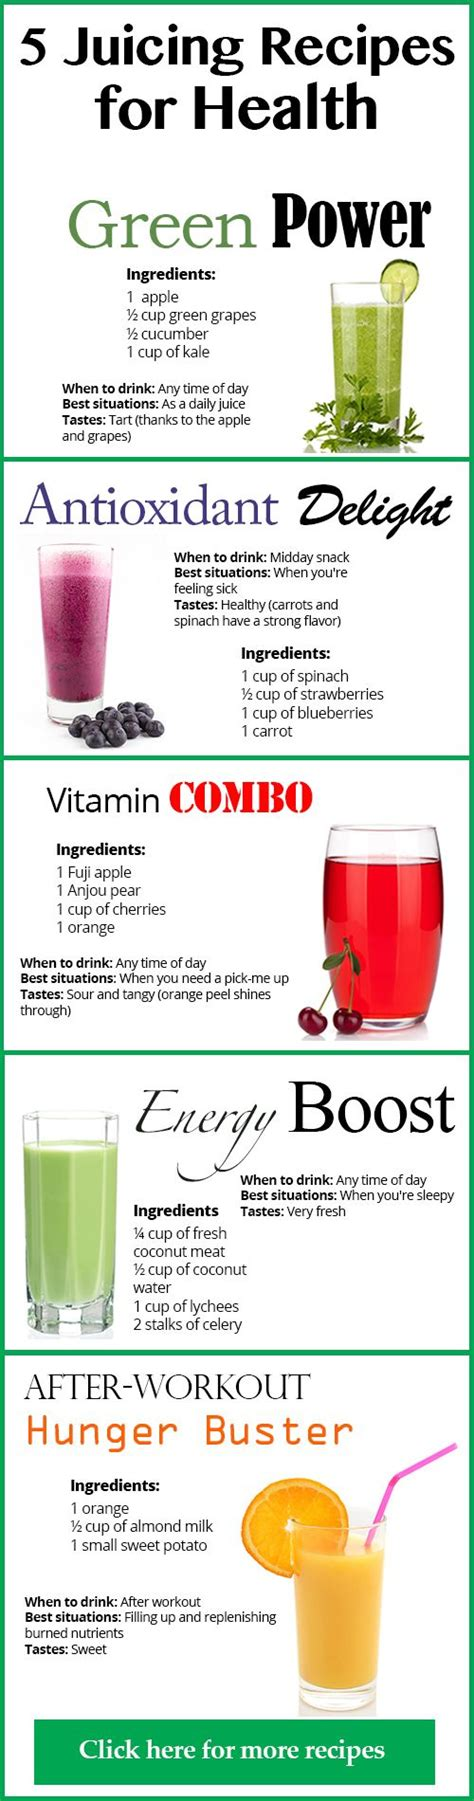 salon hype coupons the 5 best healthy juice recipes weight loss detox